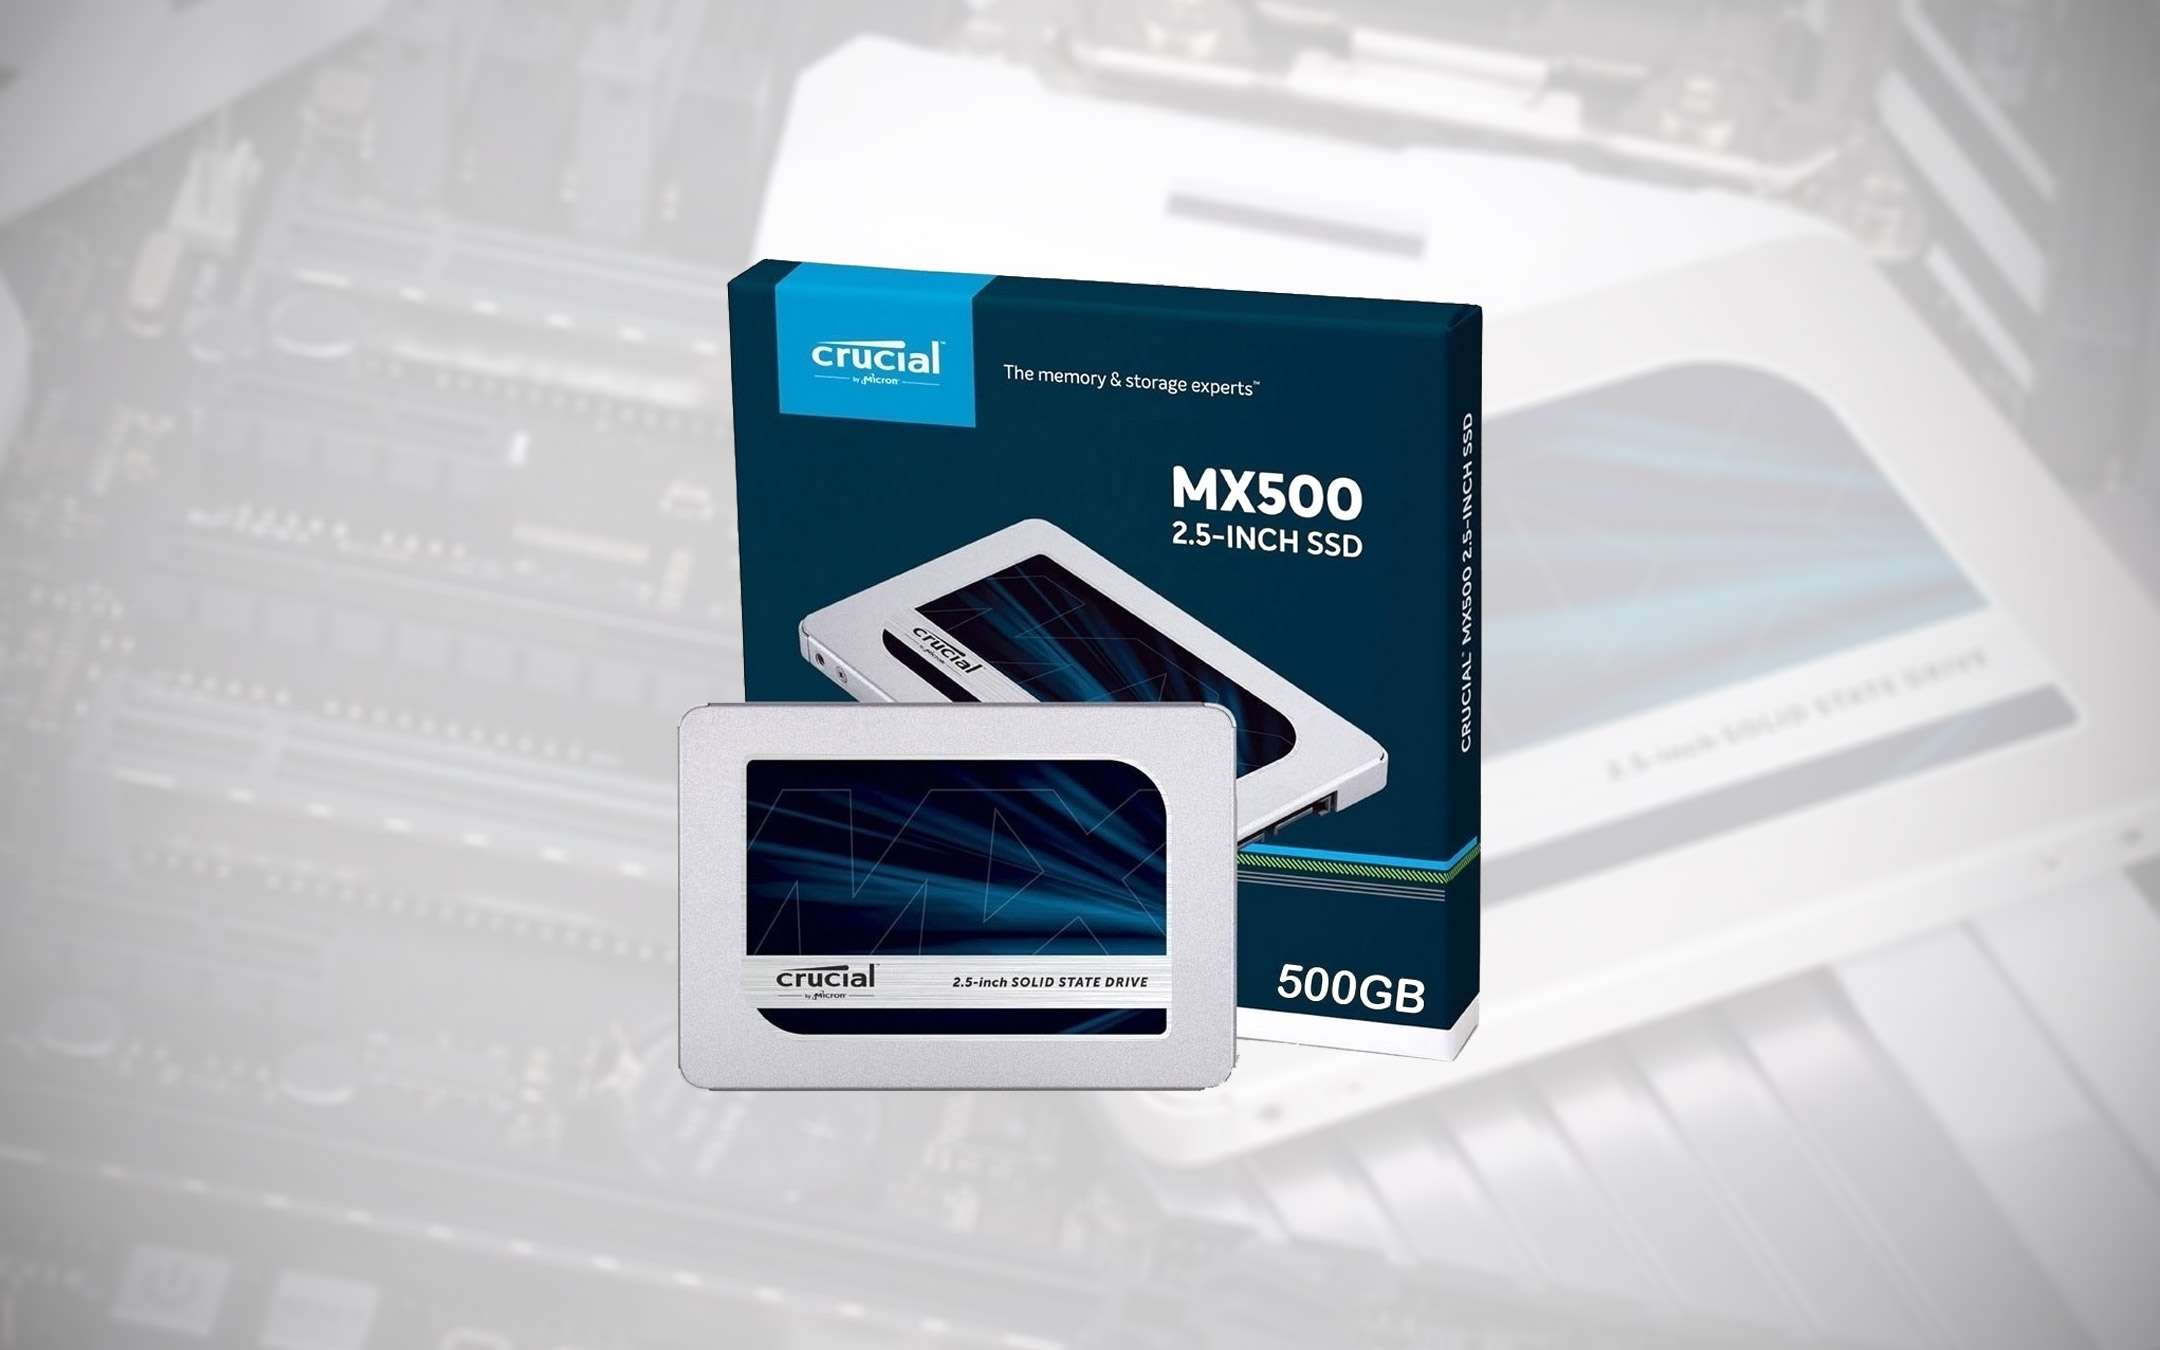 Crucial 500GB SSD on eBay and Amazon